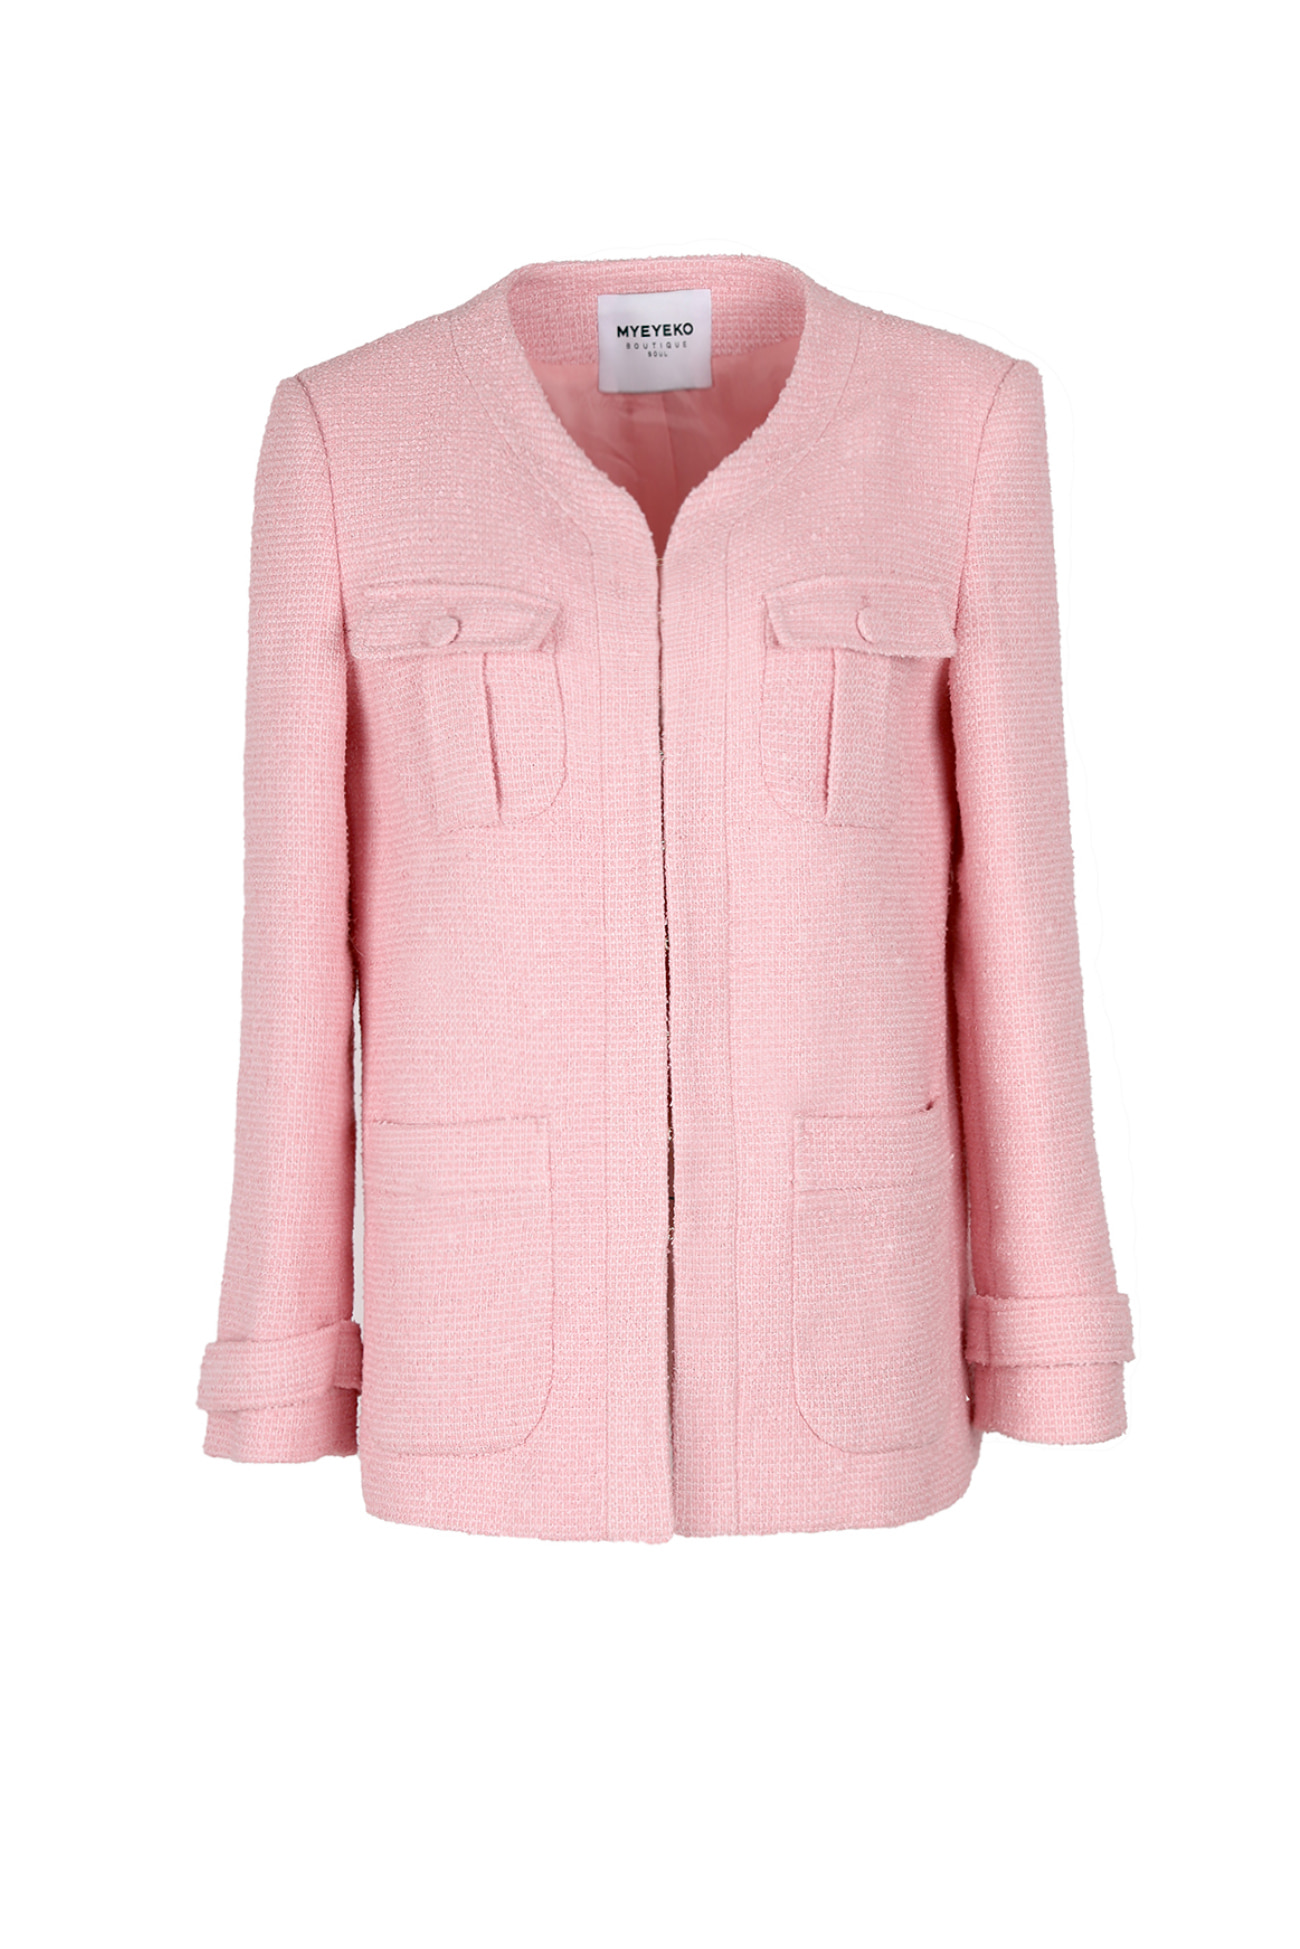 HIGH QUALITY LINE - PINK Tweed  Boucle Jacket (made fabric)